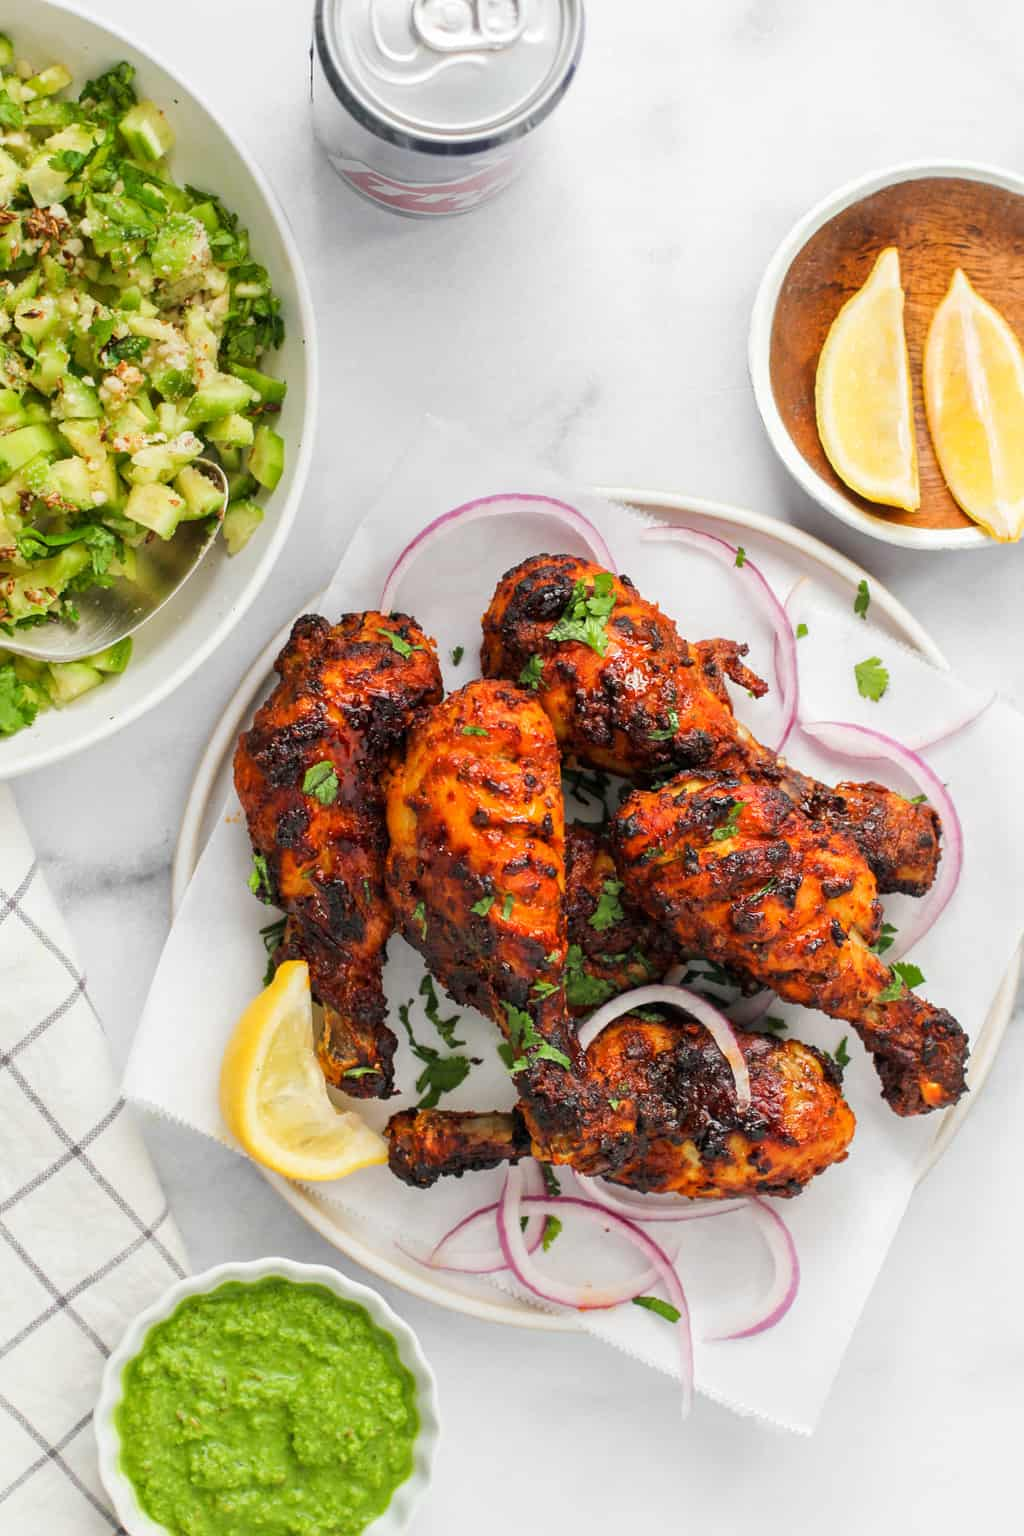 Tandoori chicken served with chutney and cucumber salald